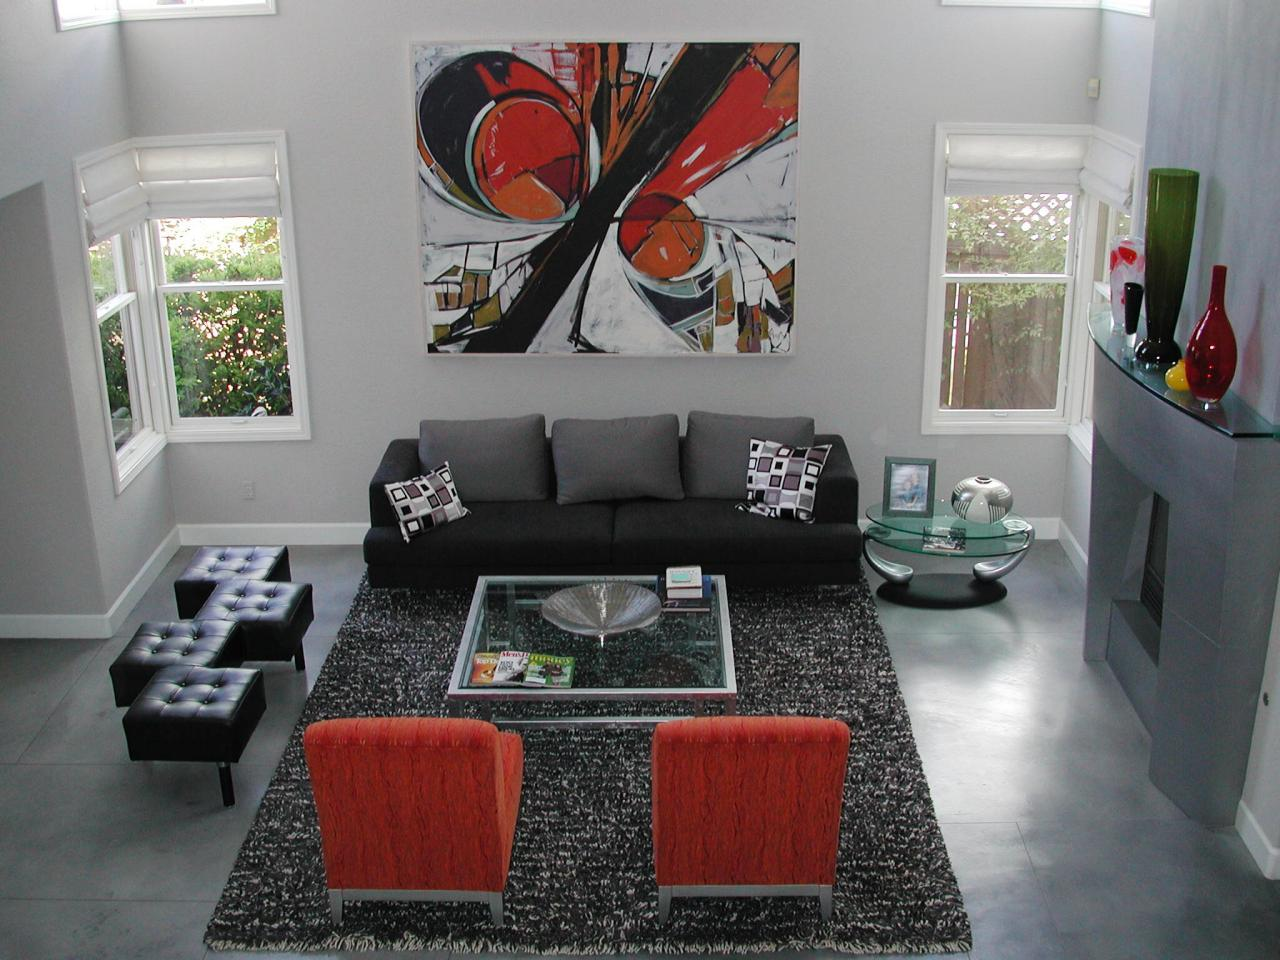 Living Room Flooring Ideas Pictures. Concrete Floors Top Living Room Flooring Options  HGTV